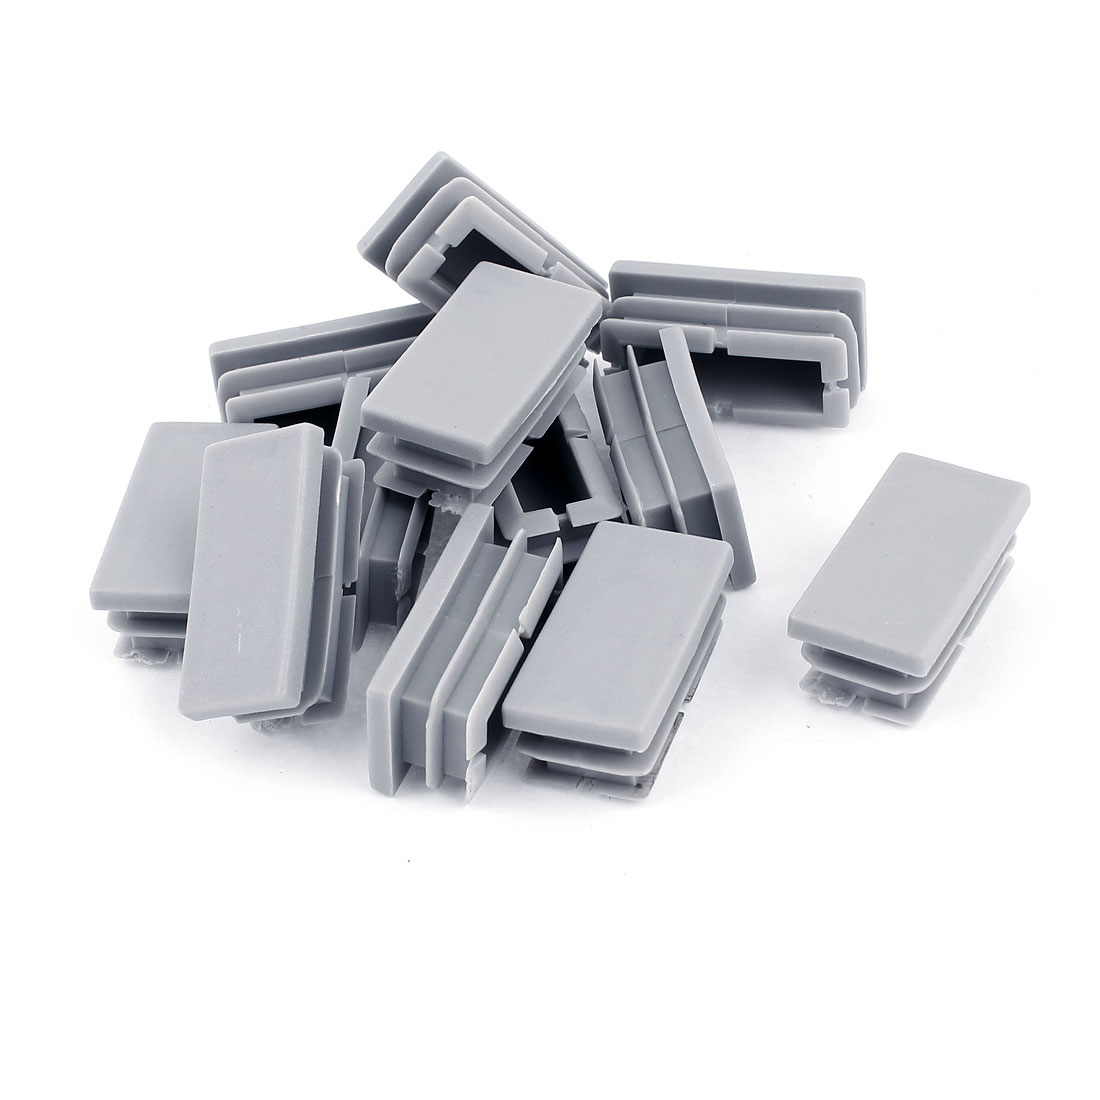 20mm x 40mm Plastic Rectangle Shaped End Cup Tube Insert Gray 12 Pcs